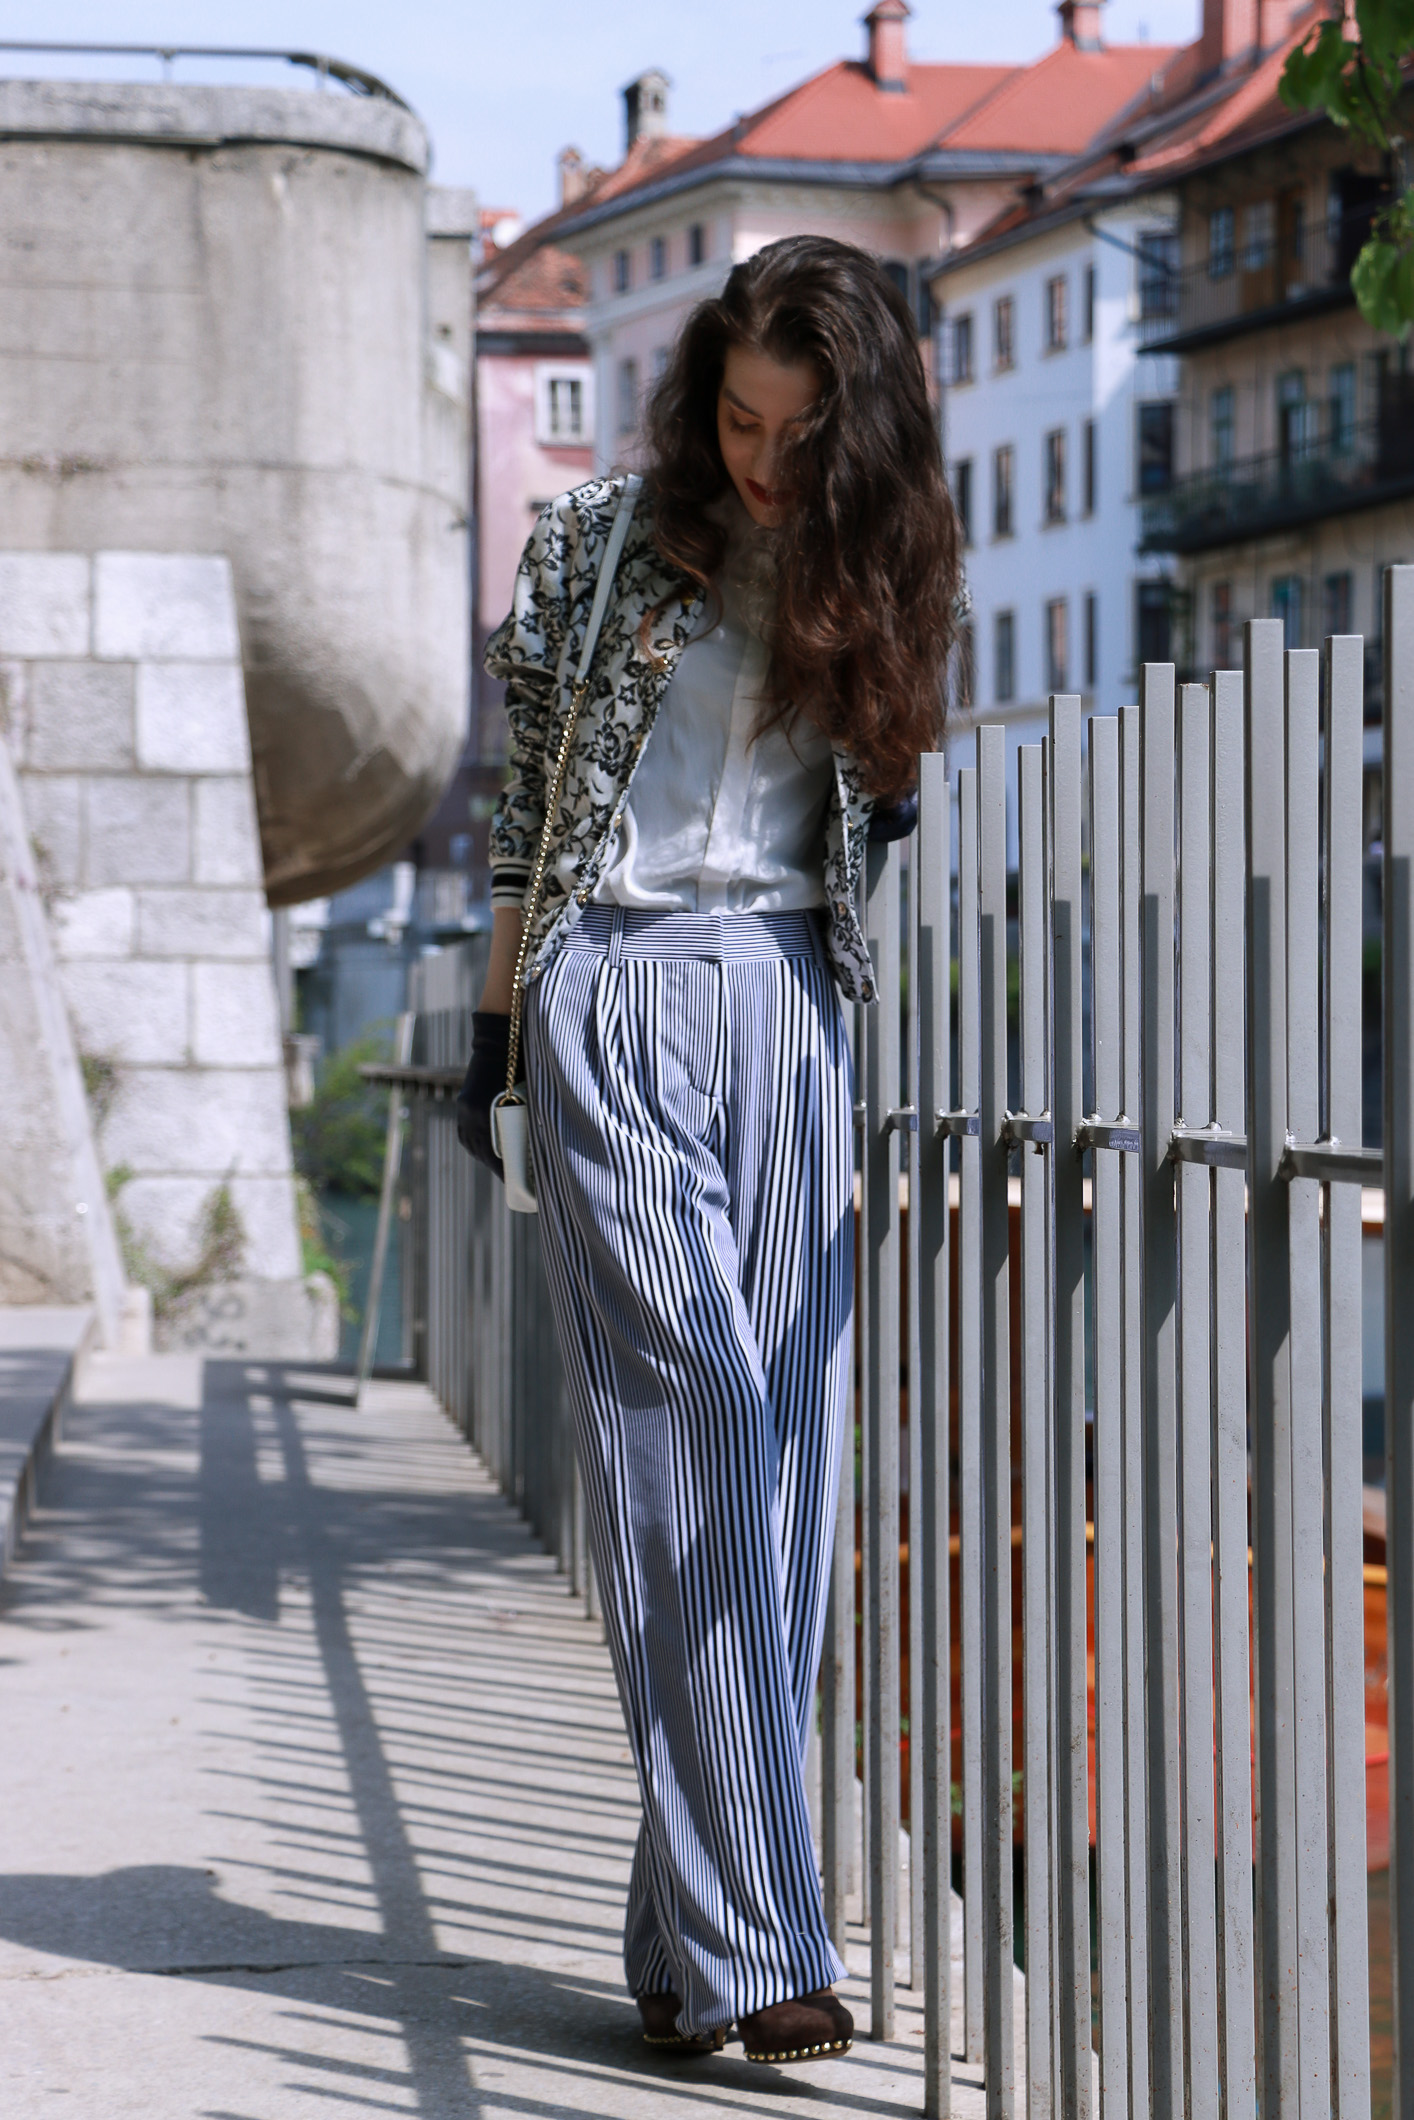 Fashion blogger Veronika Lipar of Brunette From Wall Street sharing how to wear the wide-leg pants to look taller